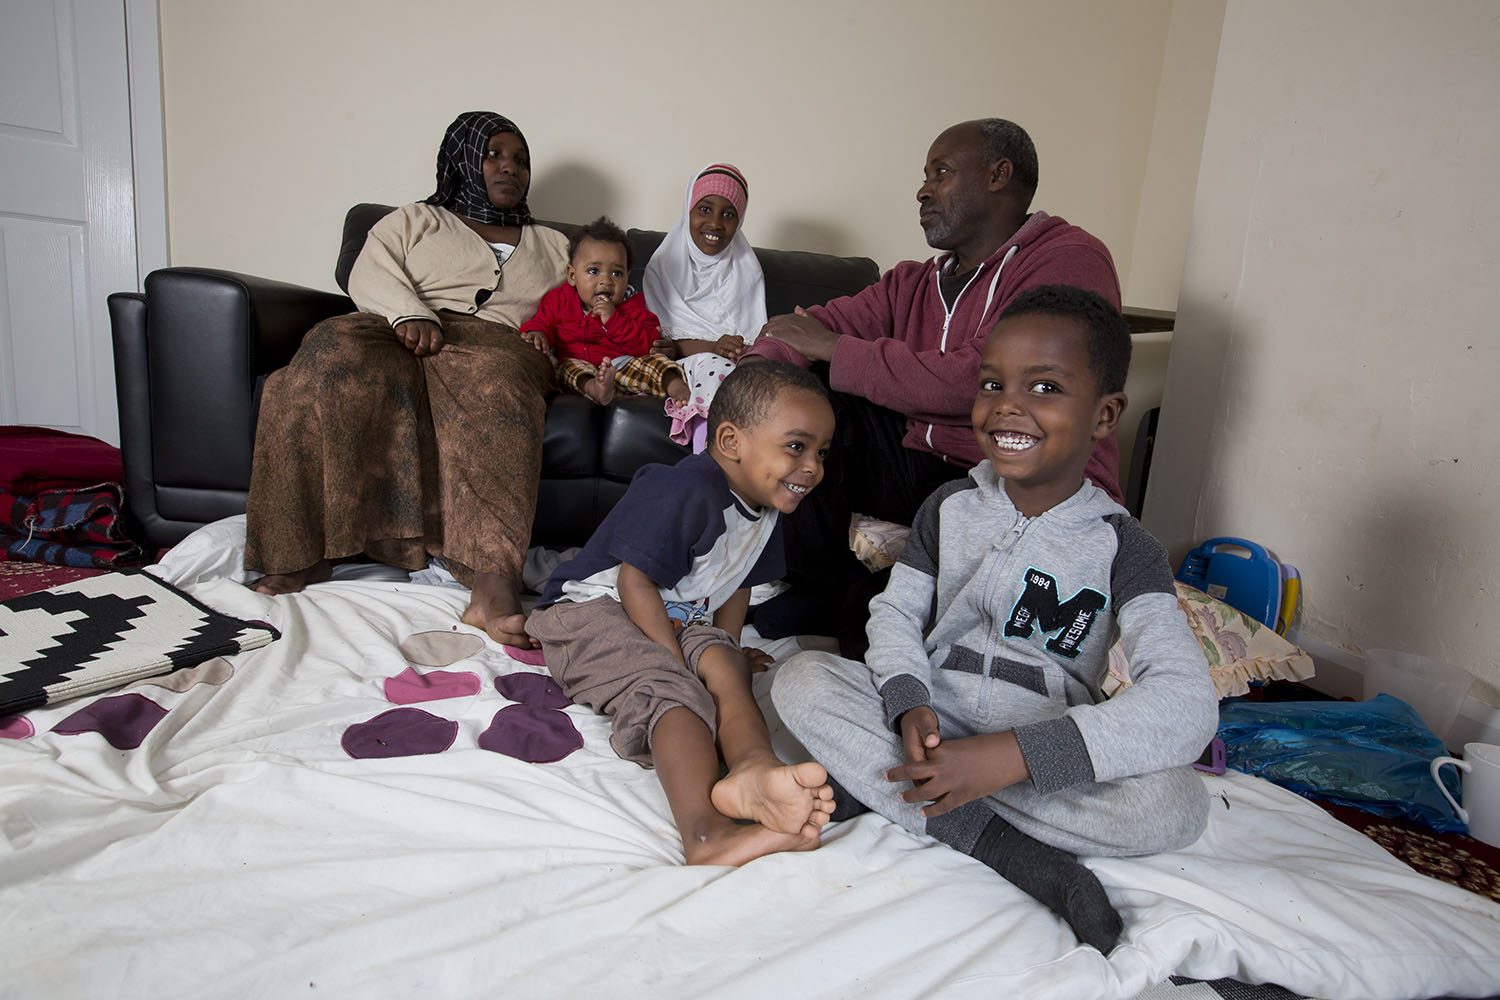 A refugee family sit in their living room in the UK. Mum and dad sit on the sofa with their baby daughter and elder daughter. Their two young sons sit on the floor; one brother is laughing at the other, who is smiling at the camera with a cheeky grin.